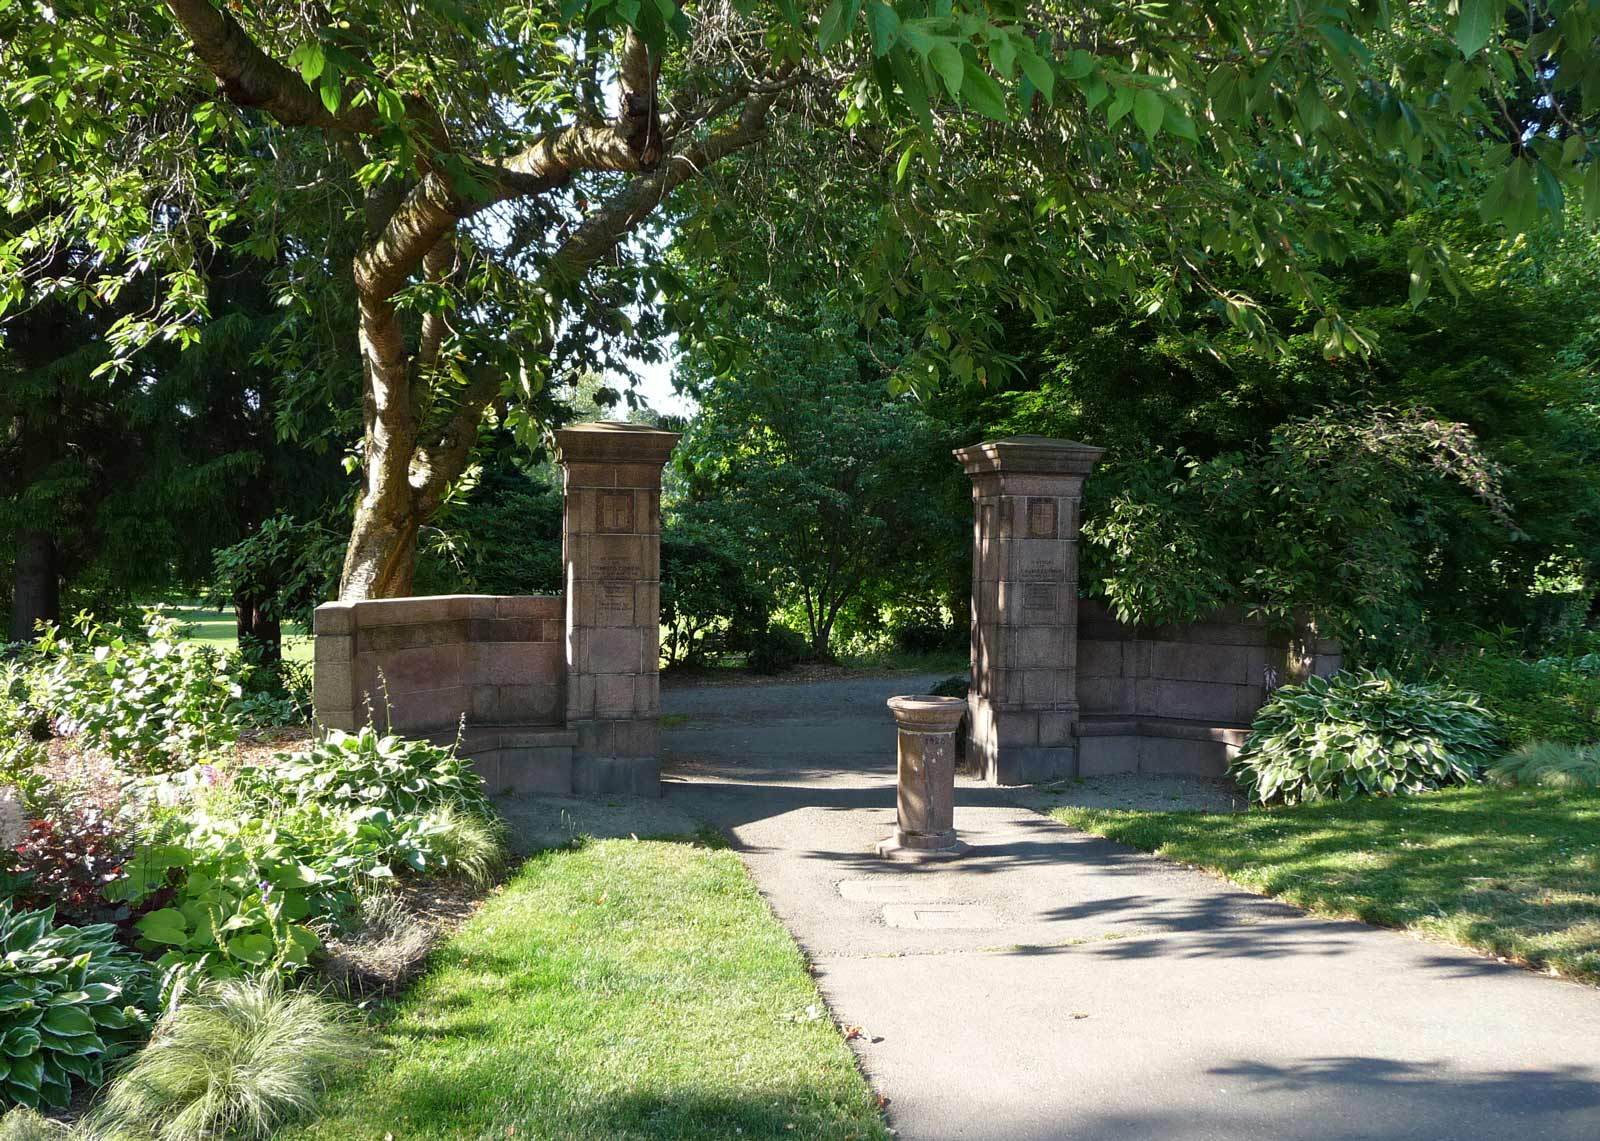 Cowen Park entry plaza